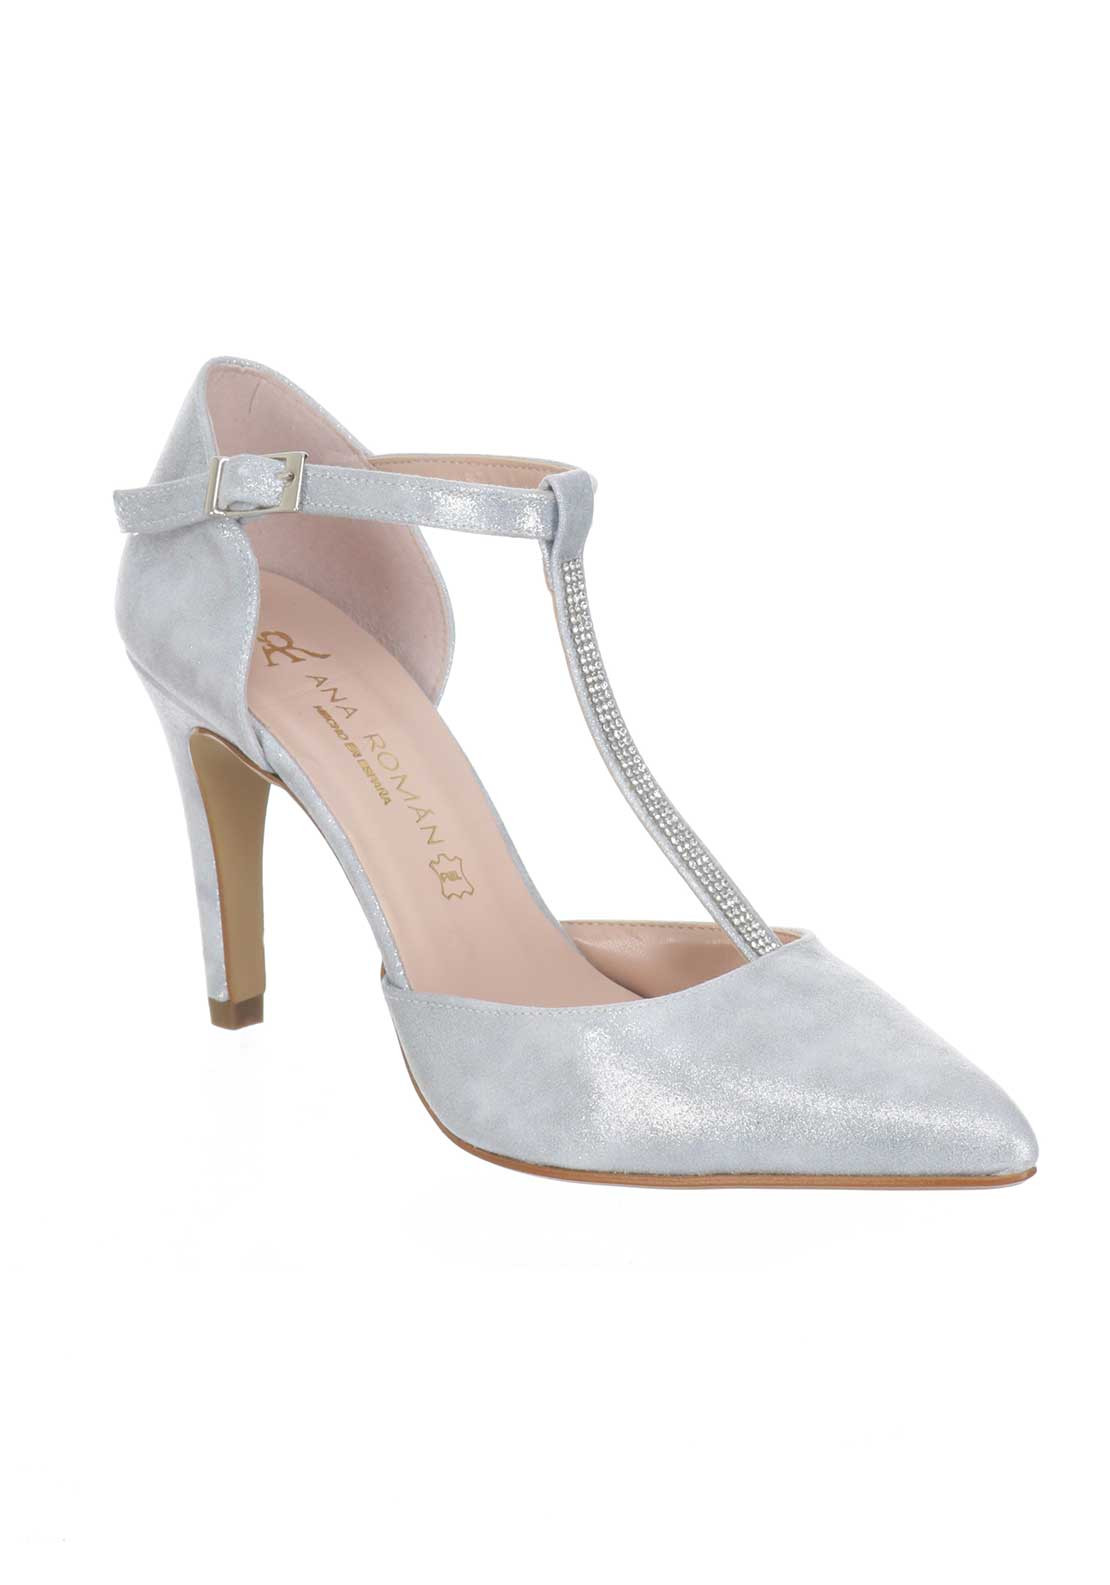 Ana Roman Shimmer T-Bar Heeled Court Shoes, Silver